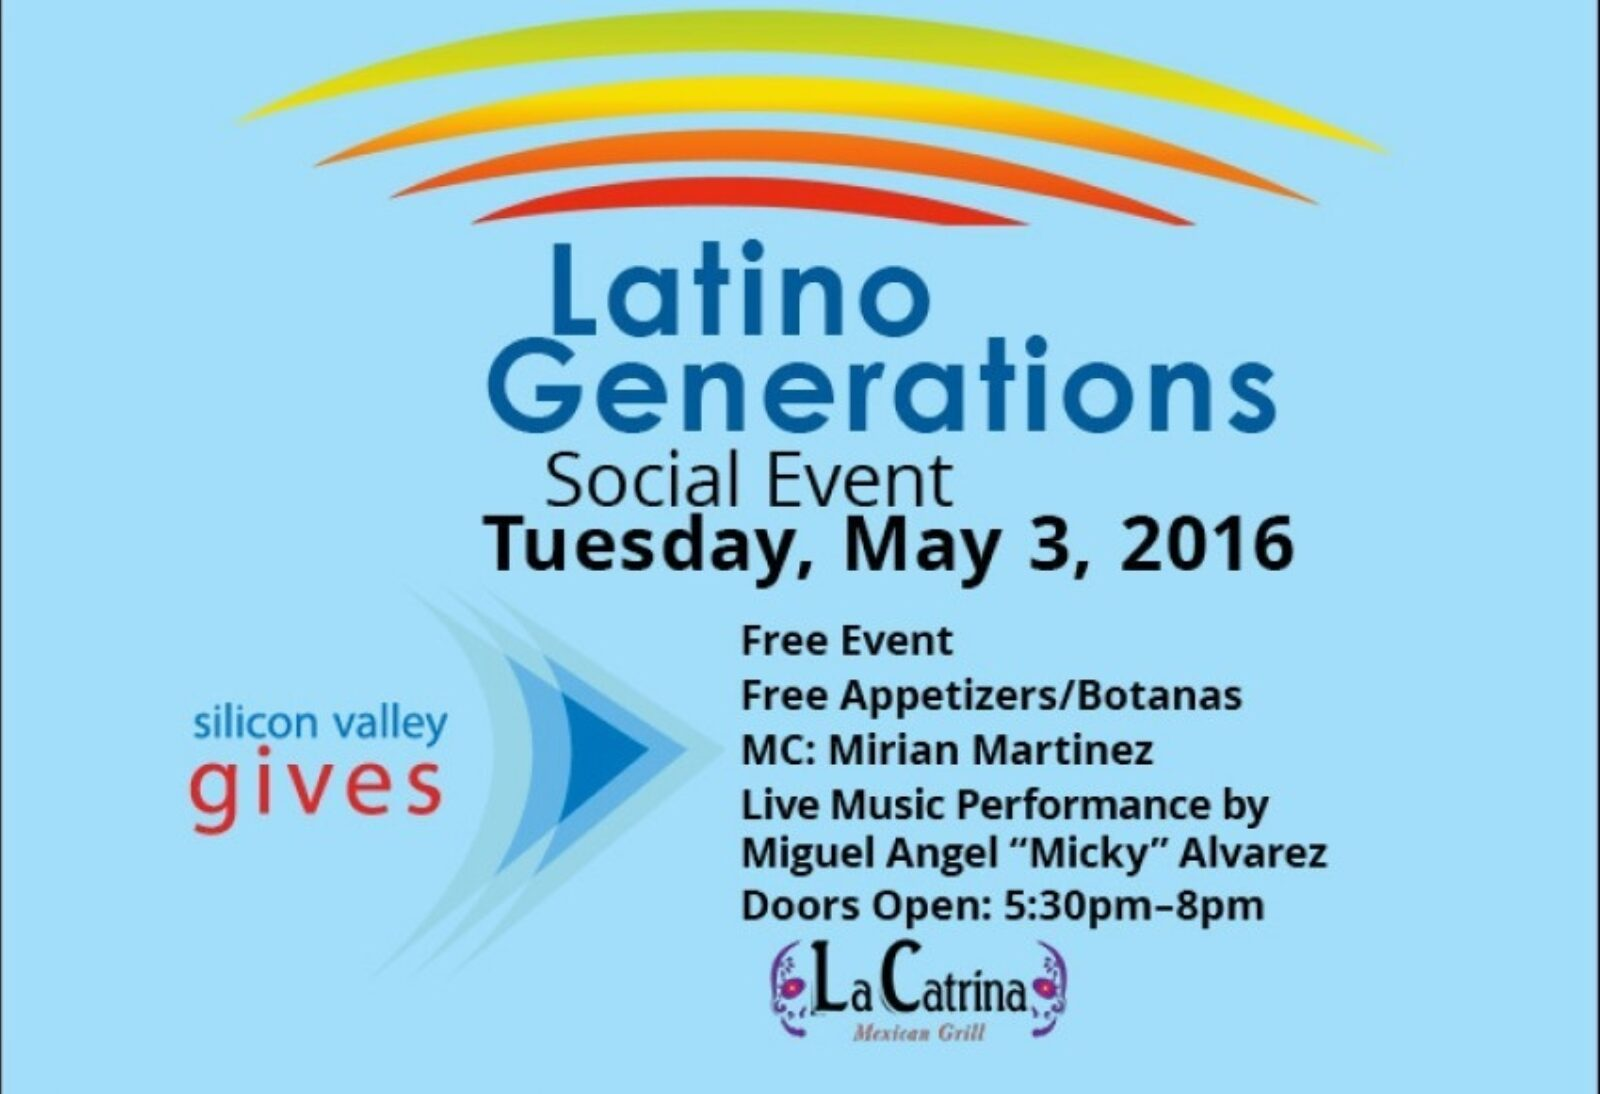 Latino Generations Social Event May 3